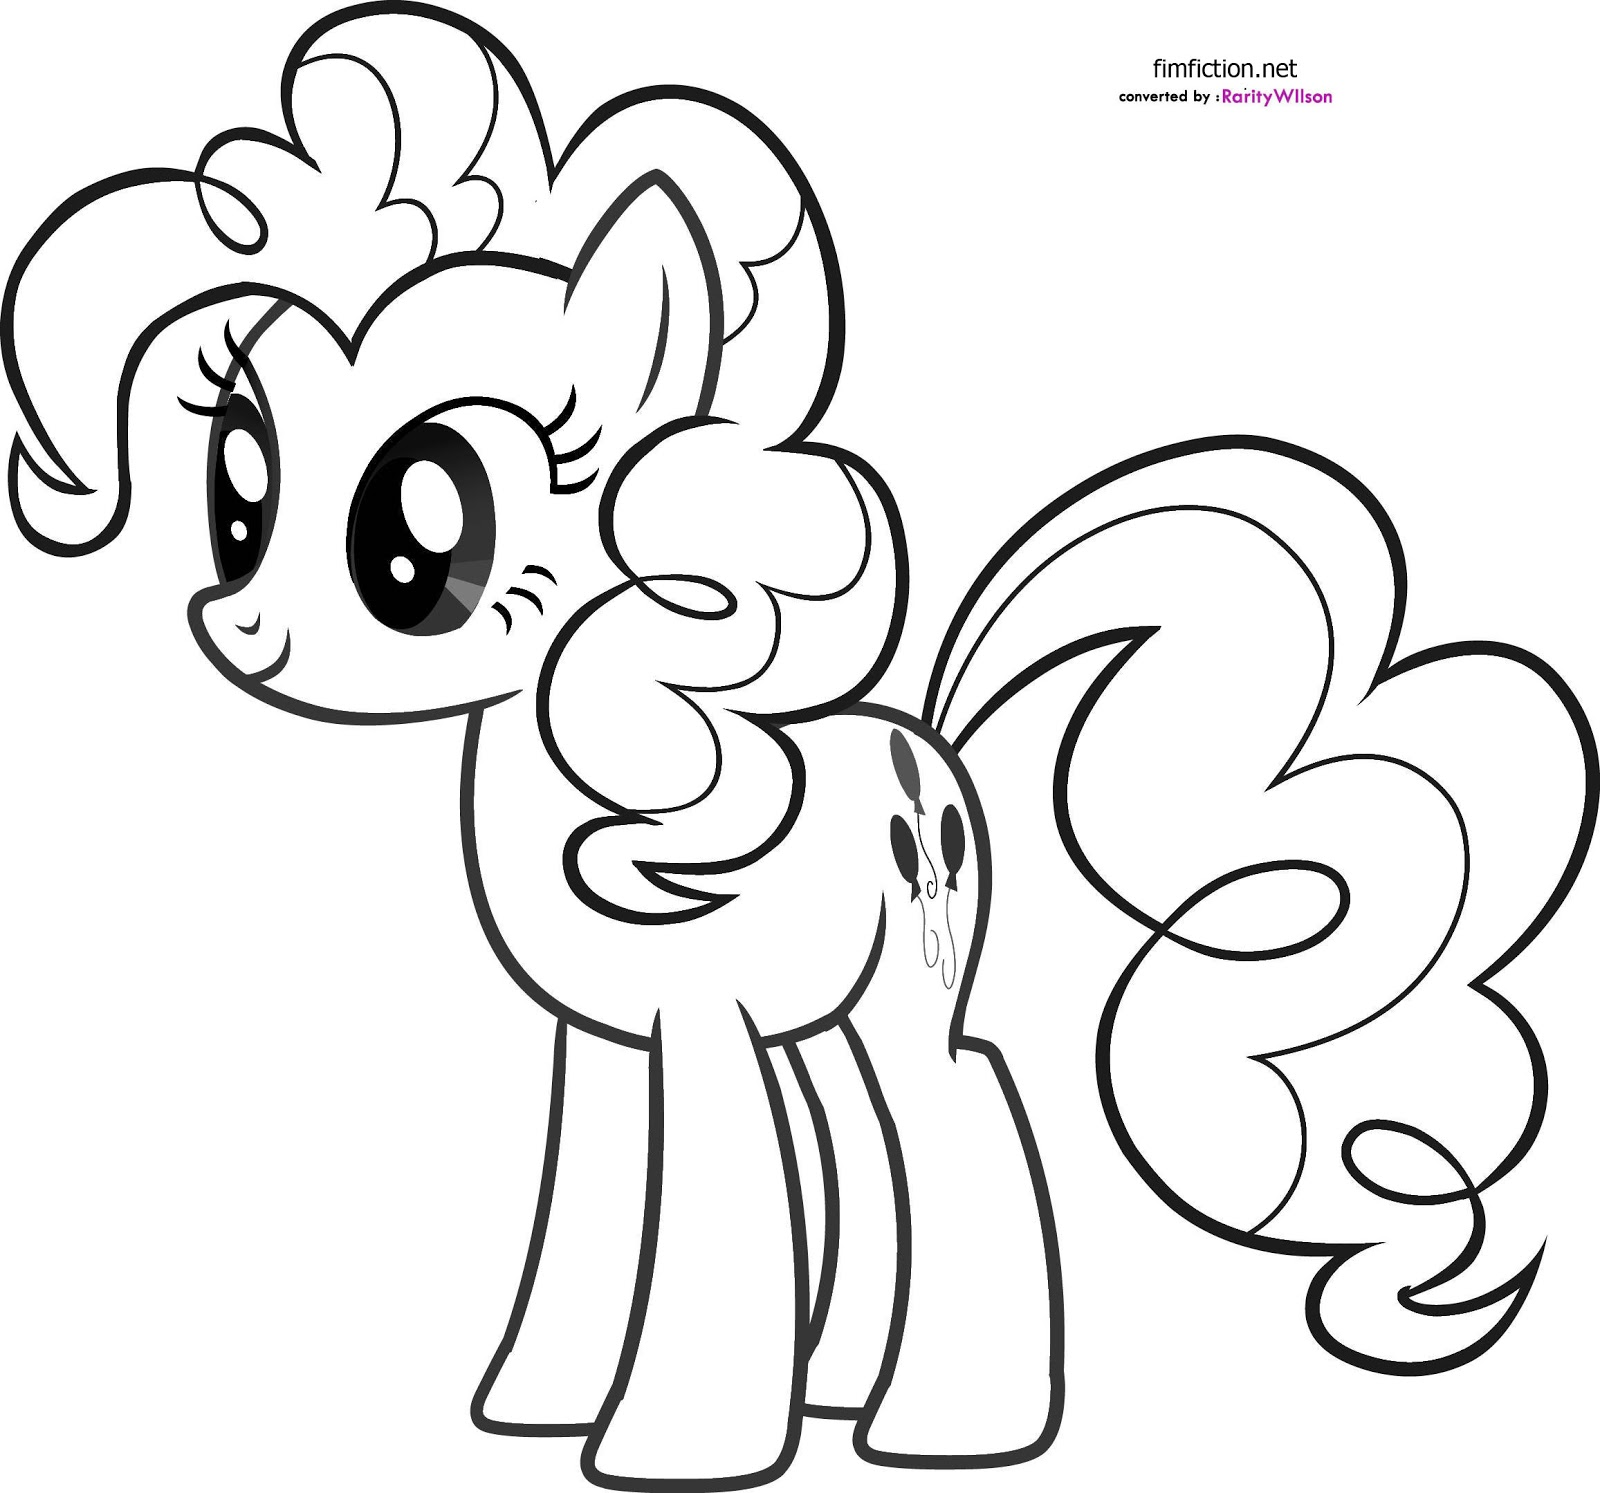 mlp color pages my little pony fluttershy coloring pages minister coloring mlp color pages